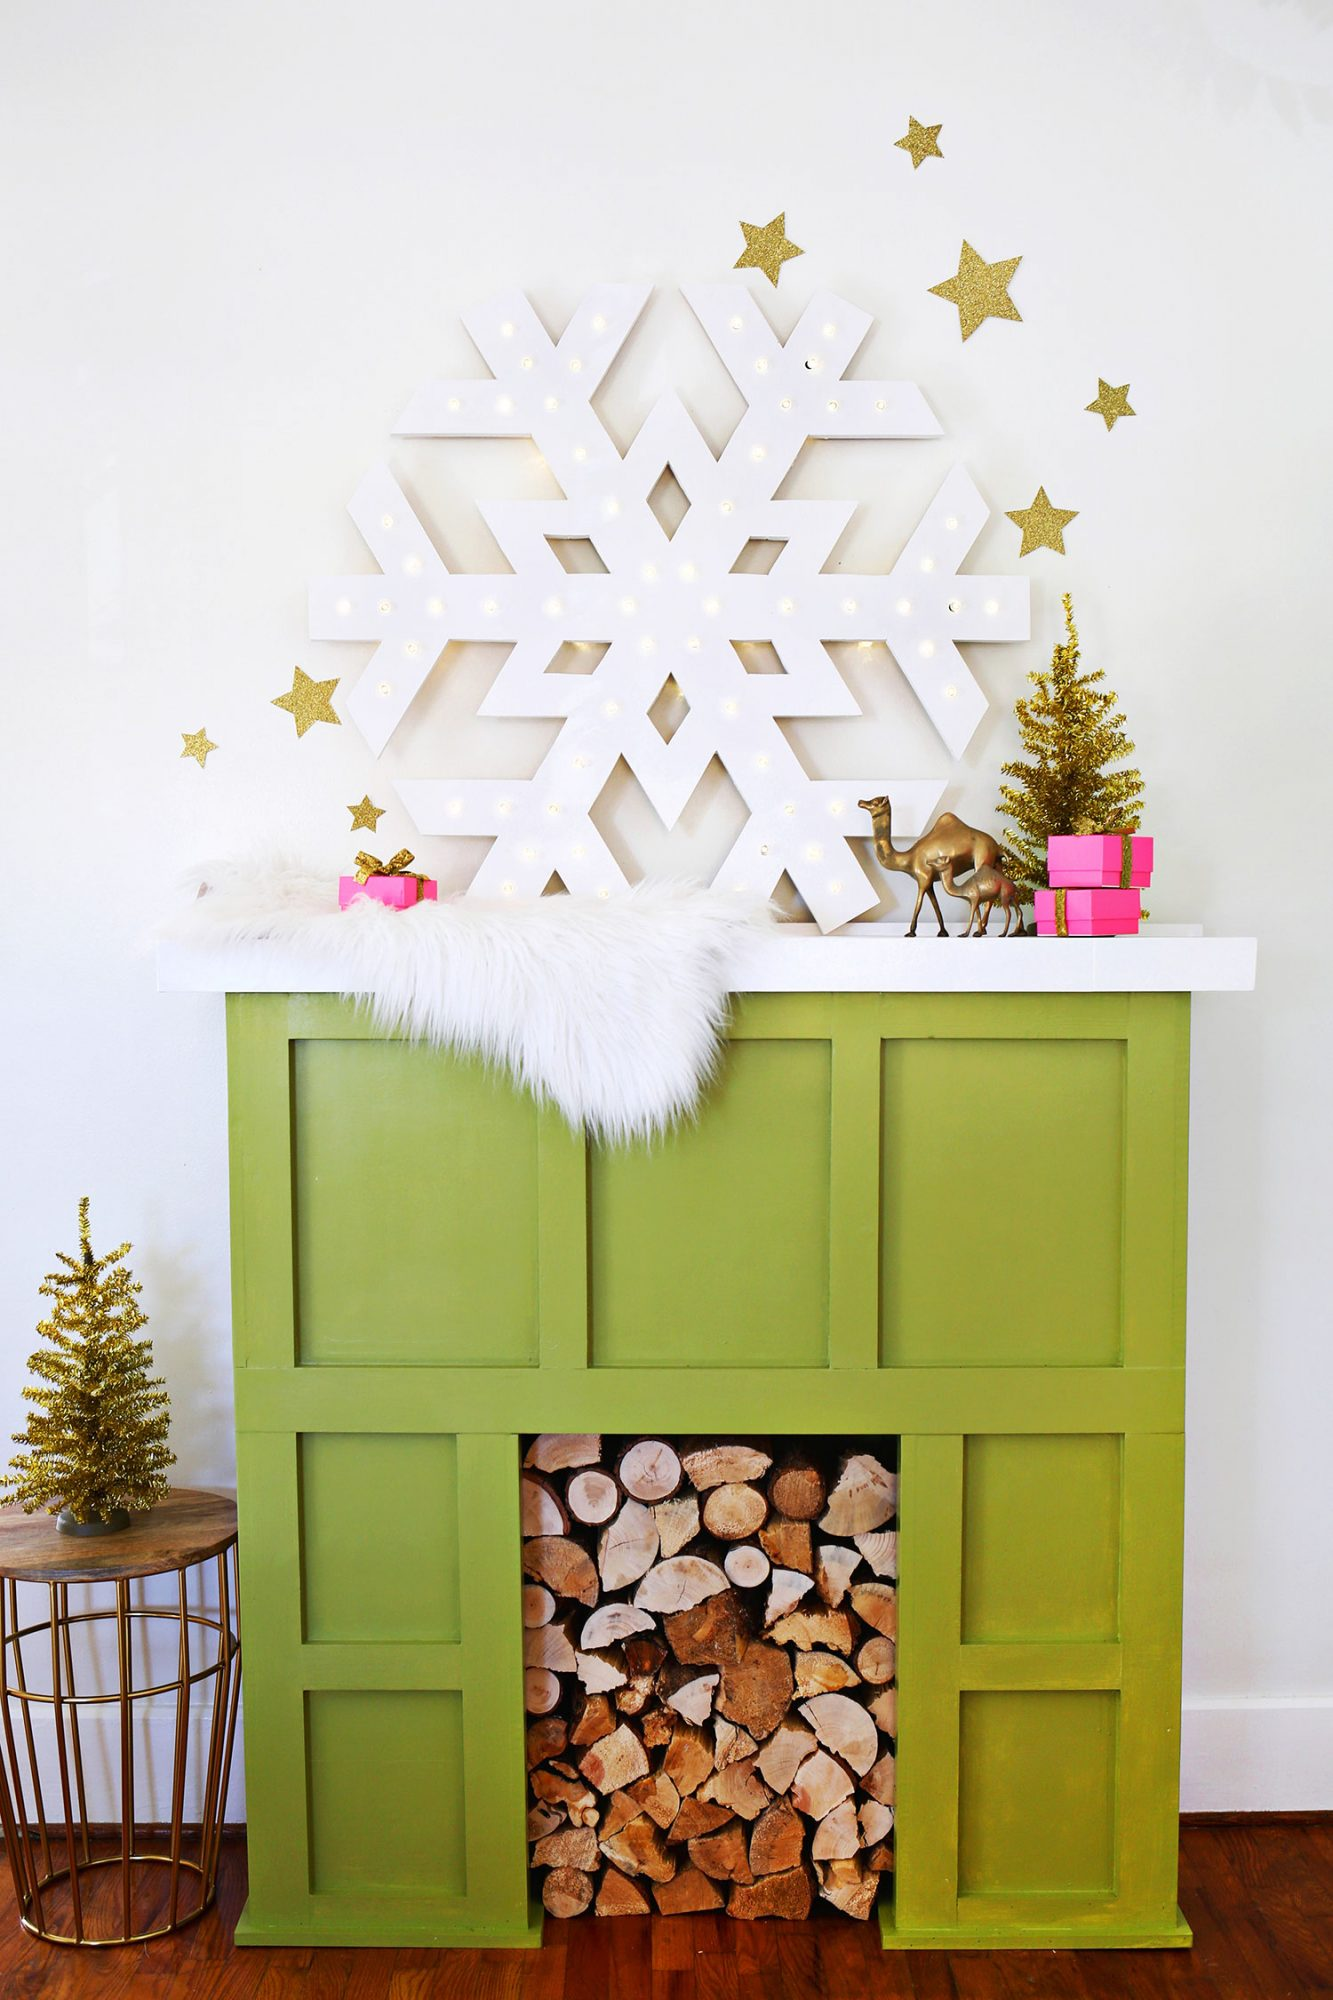 20 Fake Fireplace Ideas You Can DIY If You Don't Have a Mantel ...